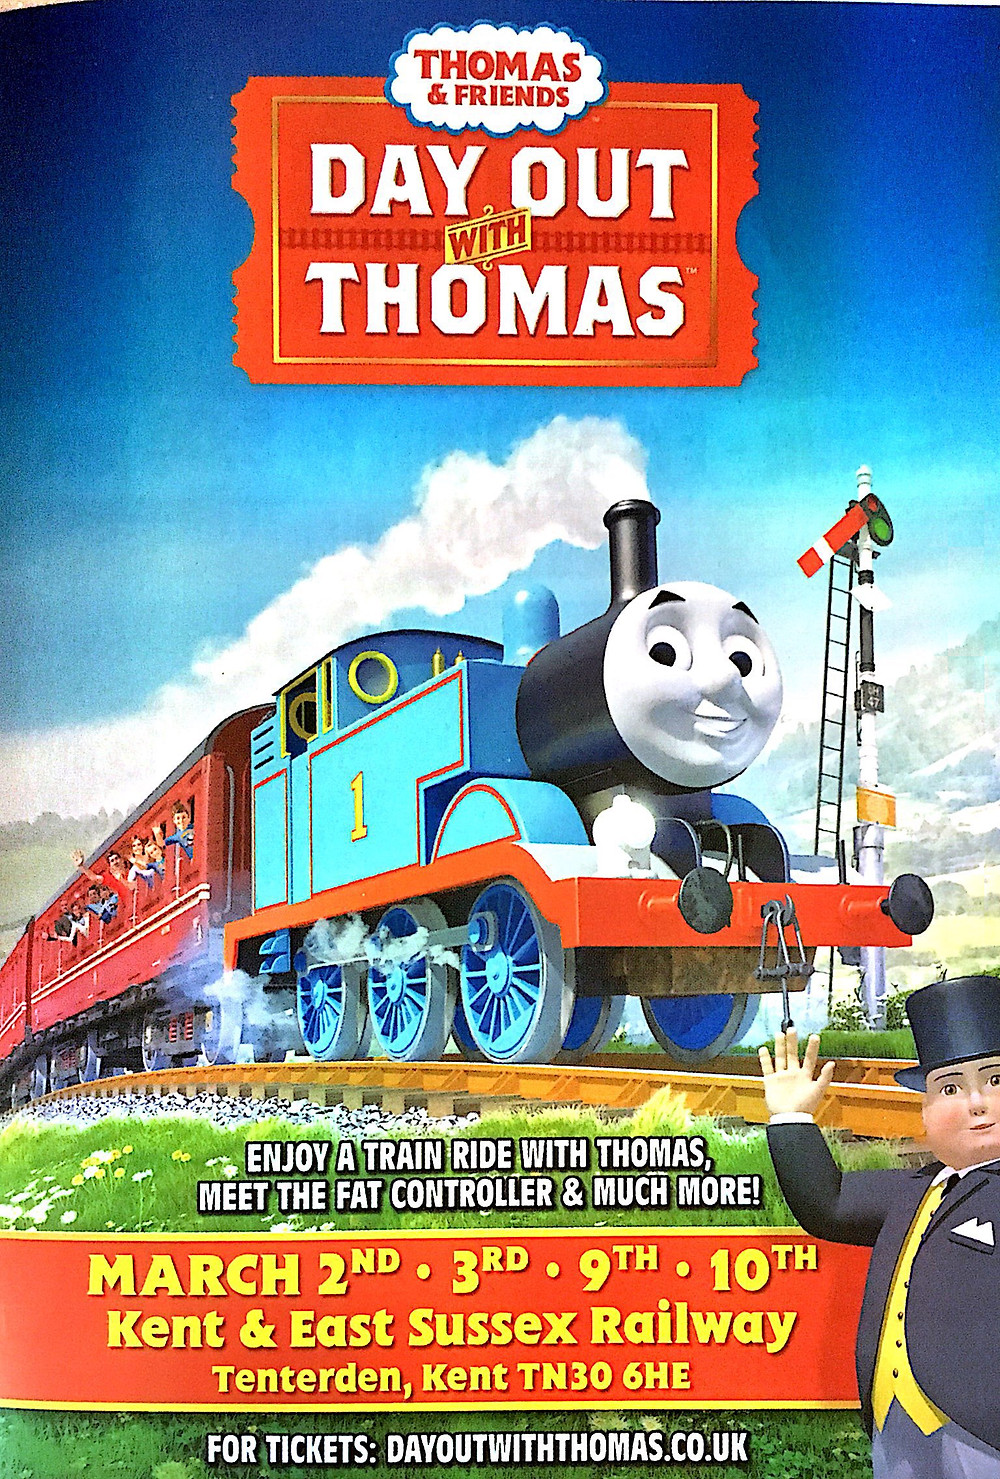 Come see Thomas the Tank Engine and Friends